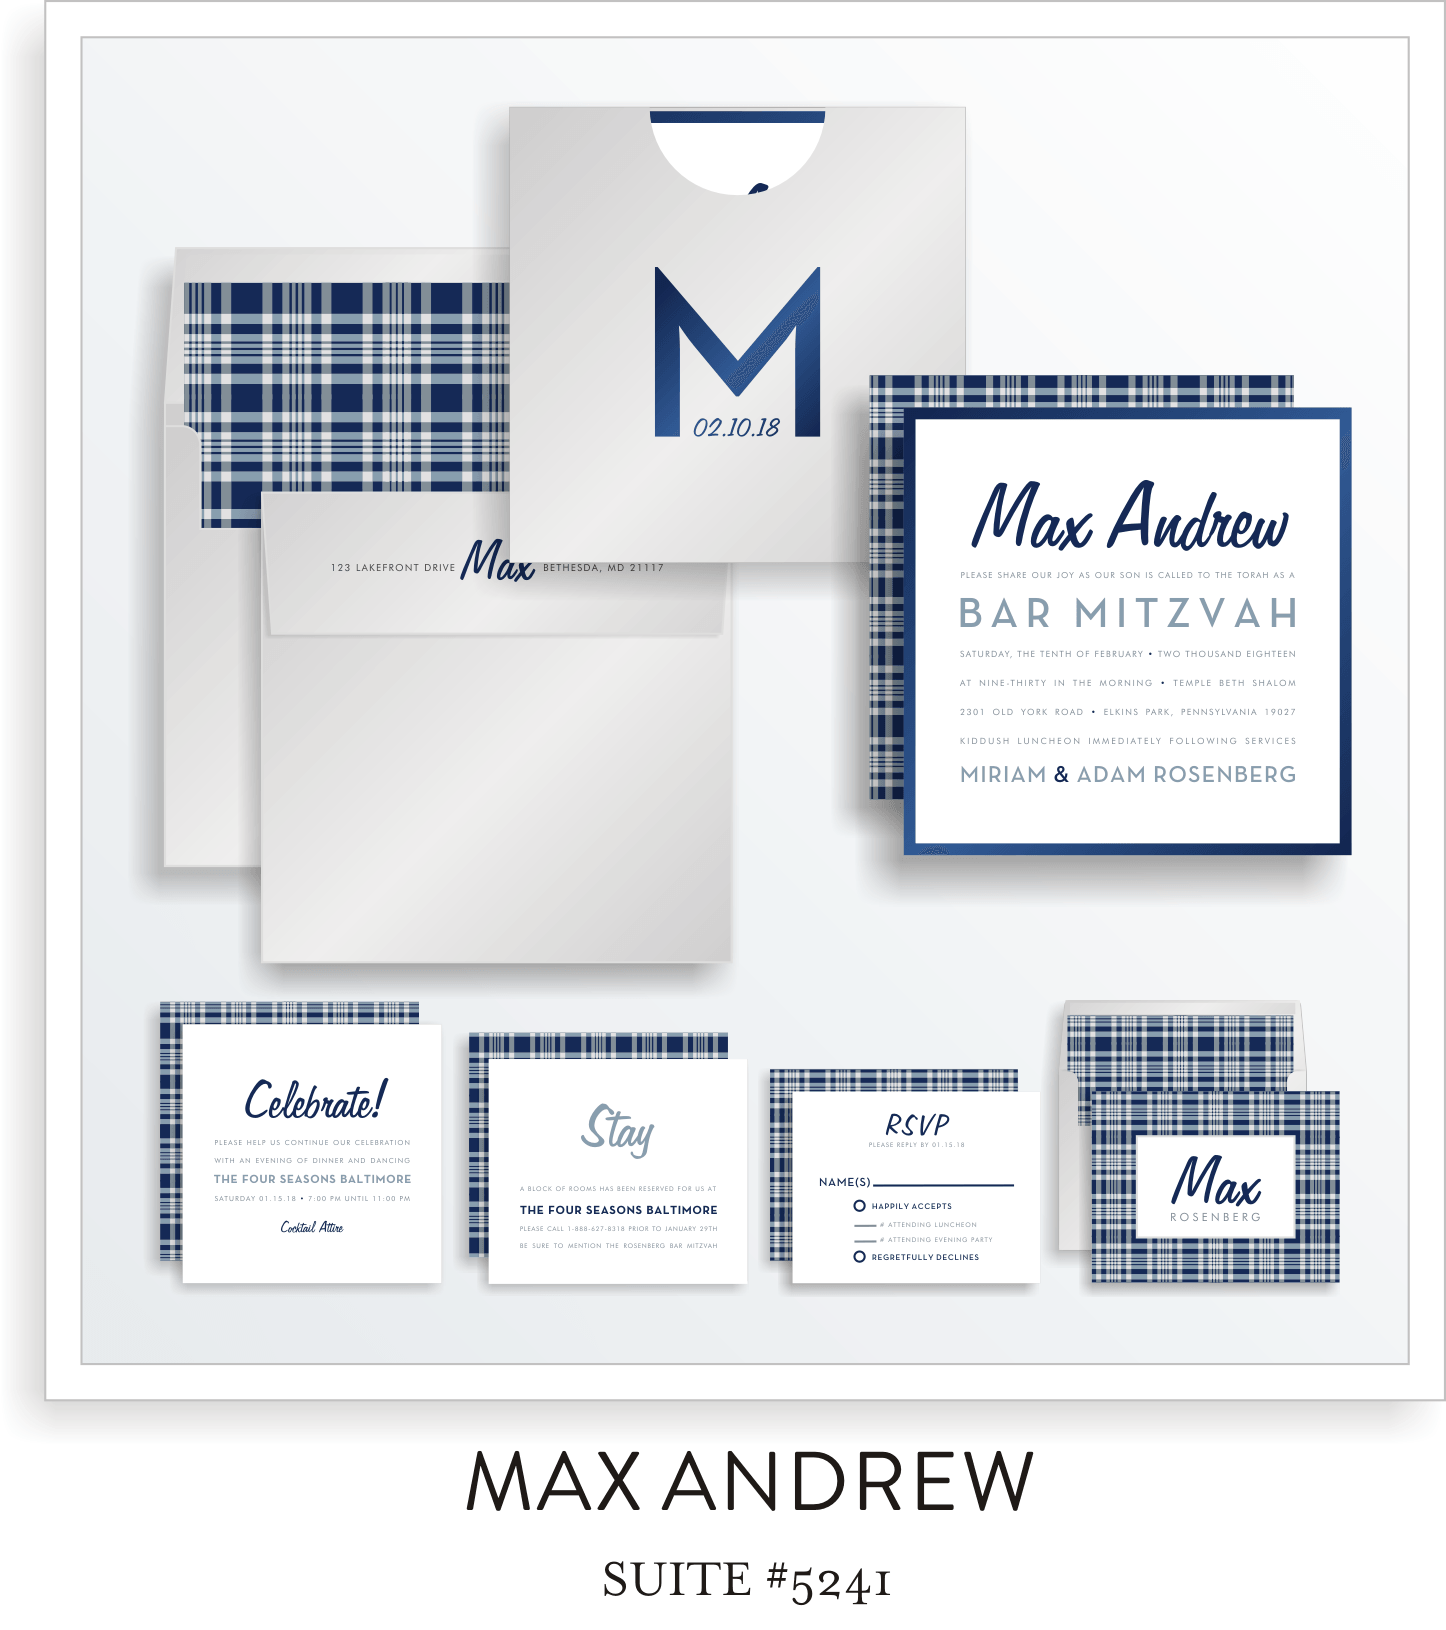 Copy of Bar Mitzvah Invitation Suite 5241 - Max Andrew